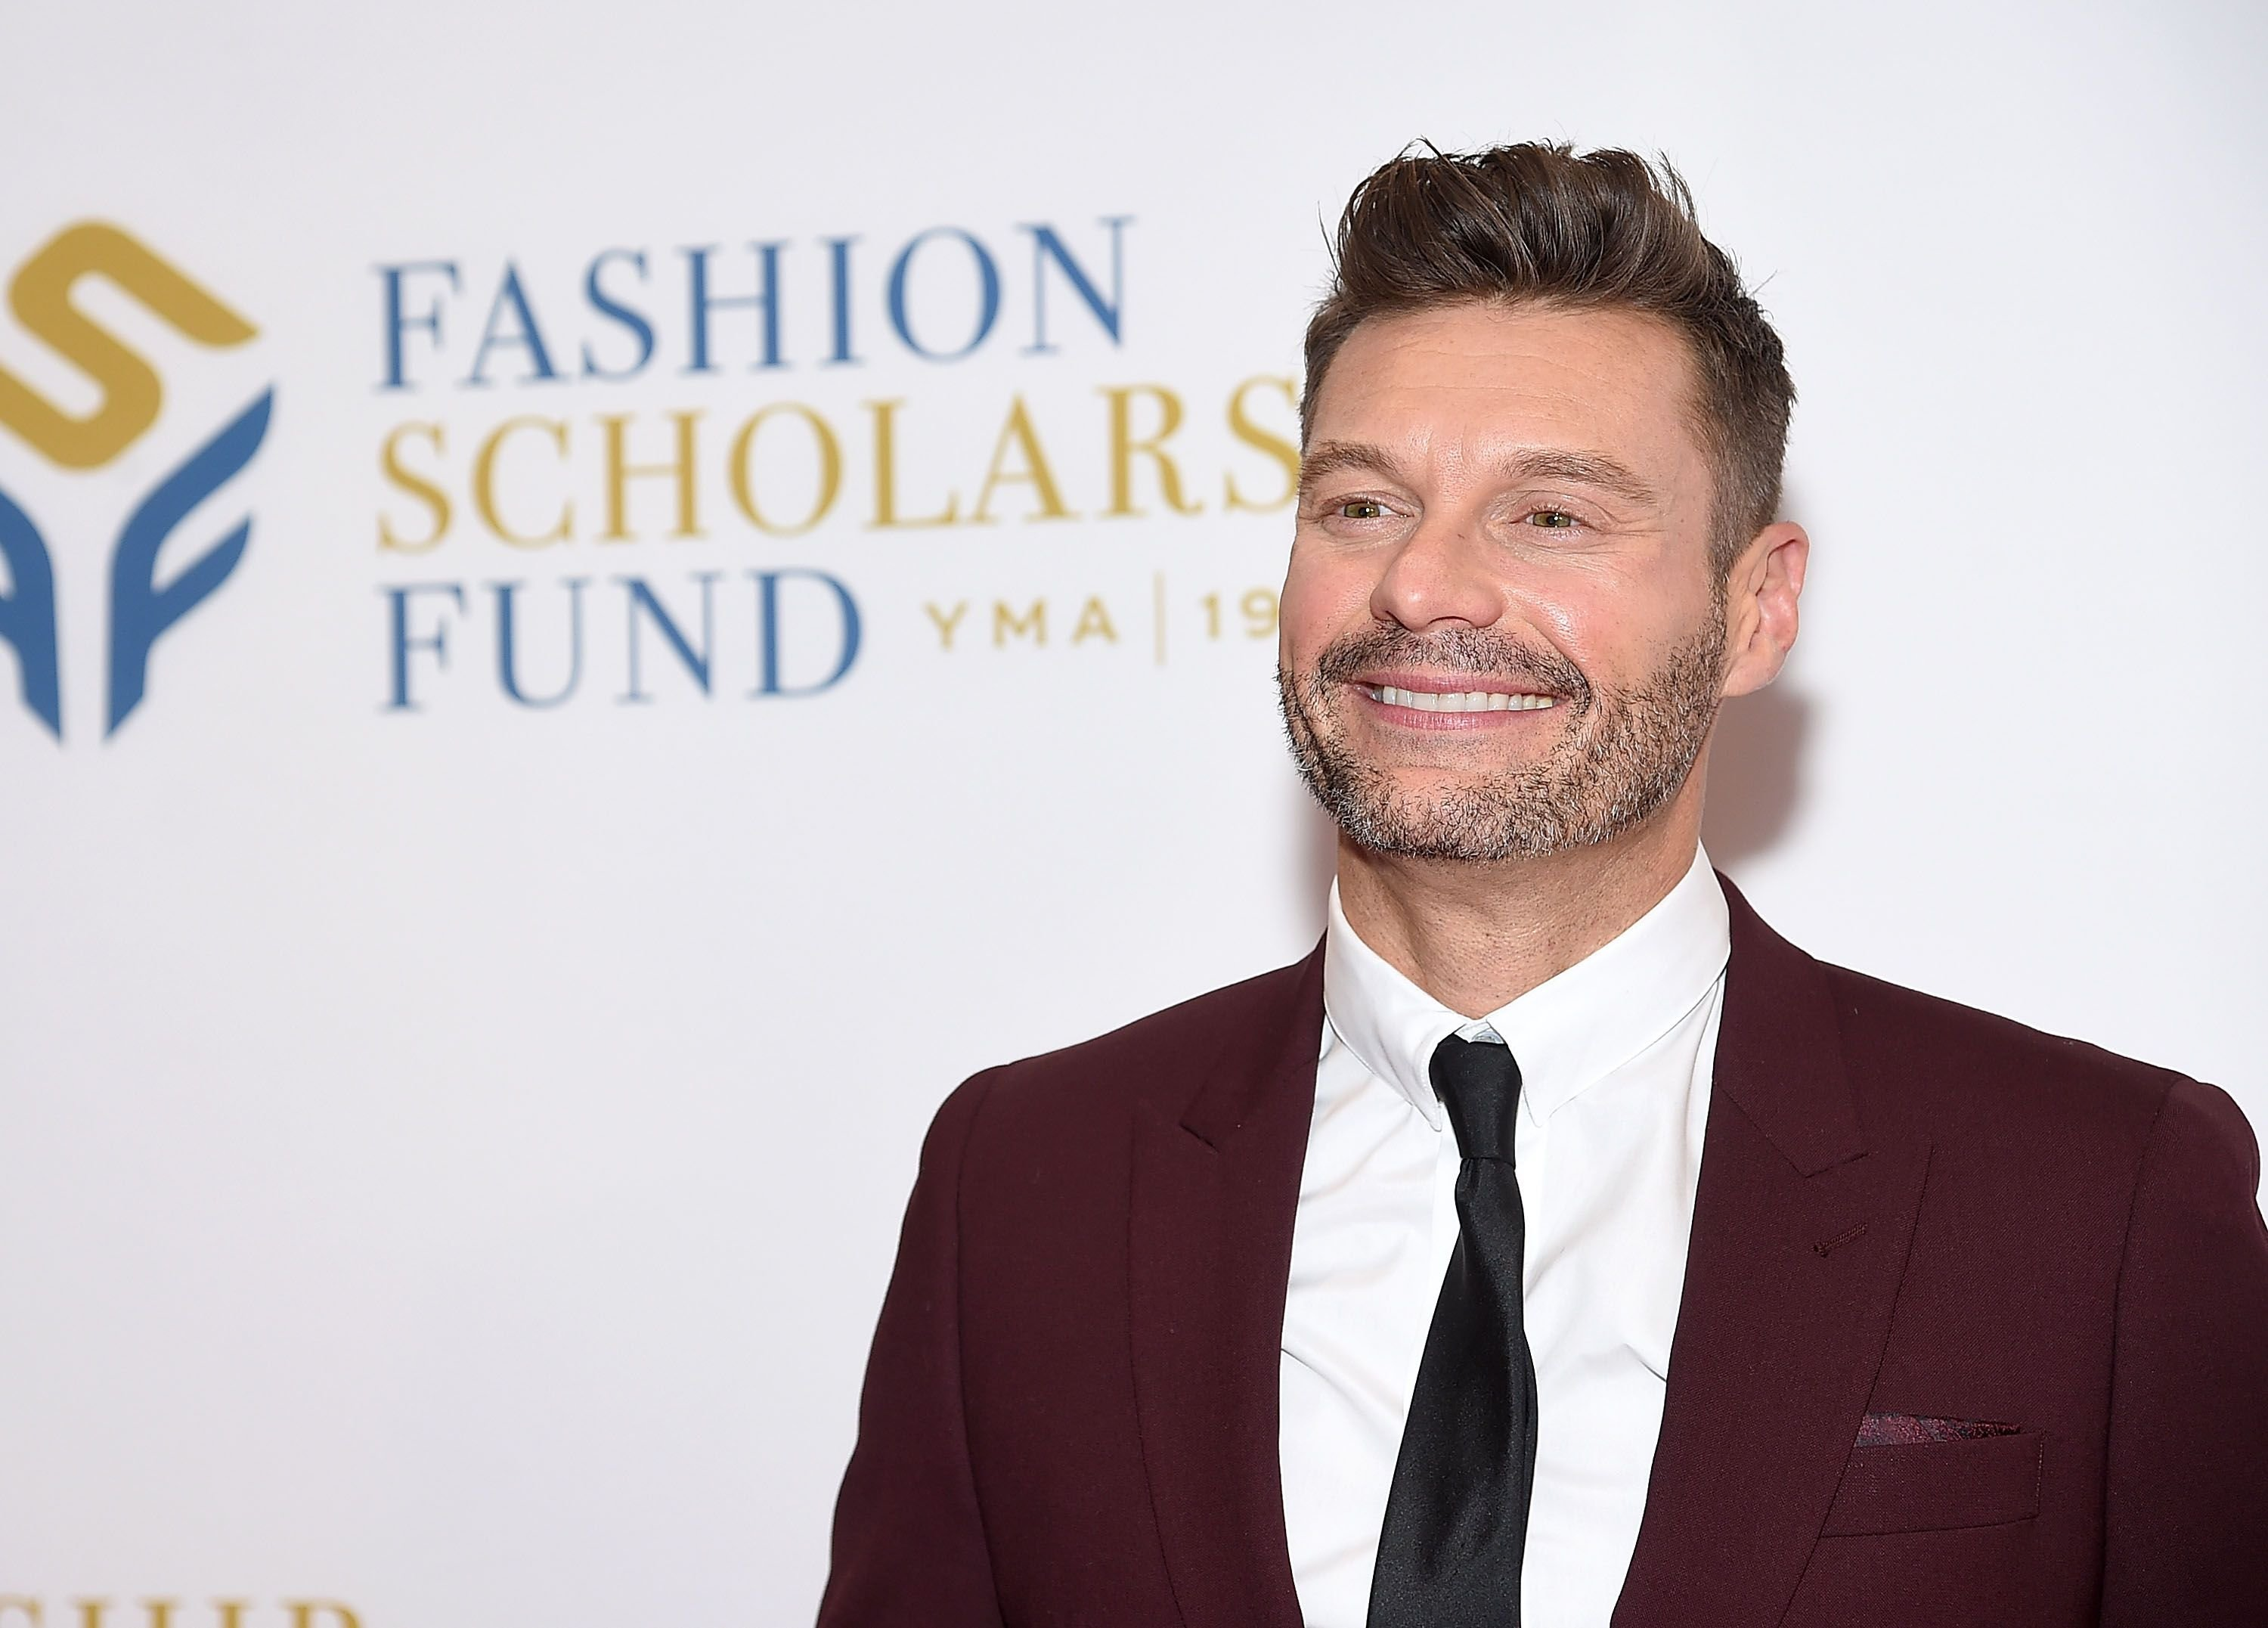 Ryan Seacrest during the 2019 Fashion Scholarship Fund Awards Gala on January 10 in New York City. | Source: Getty Images